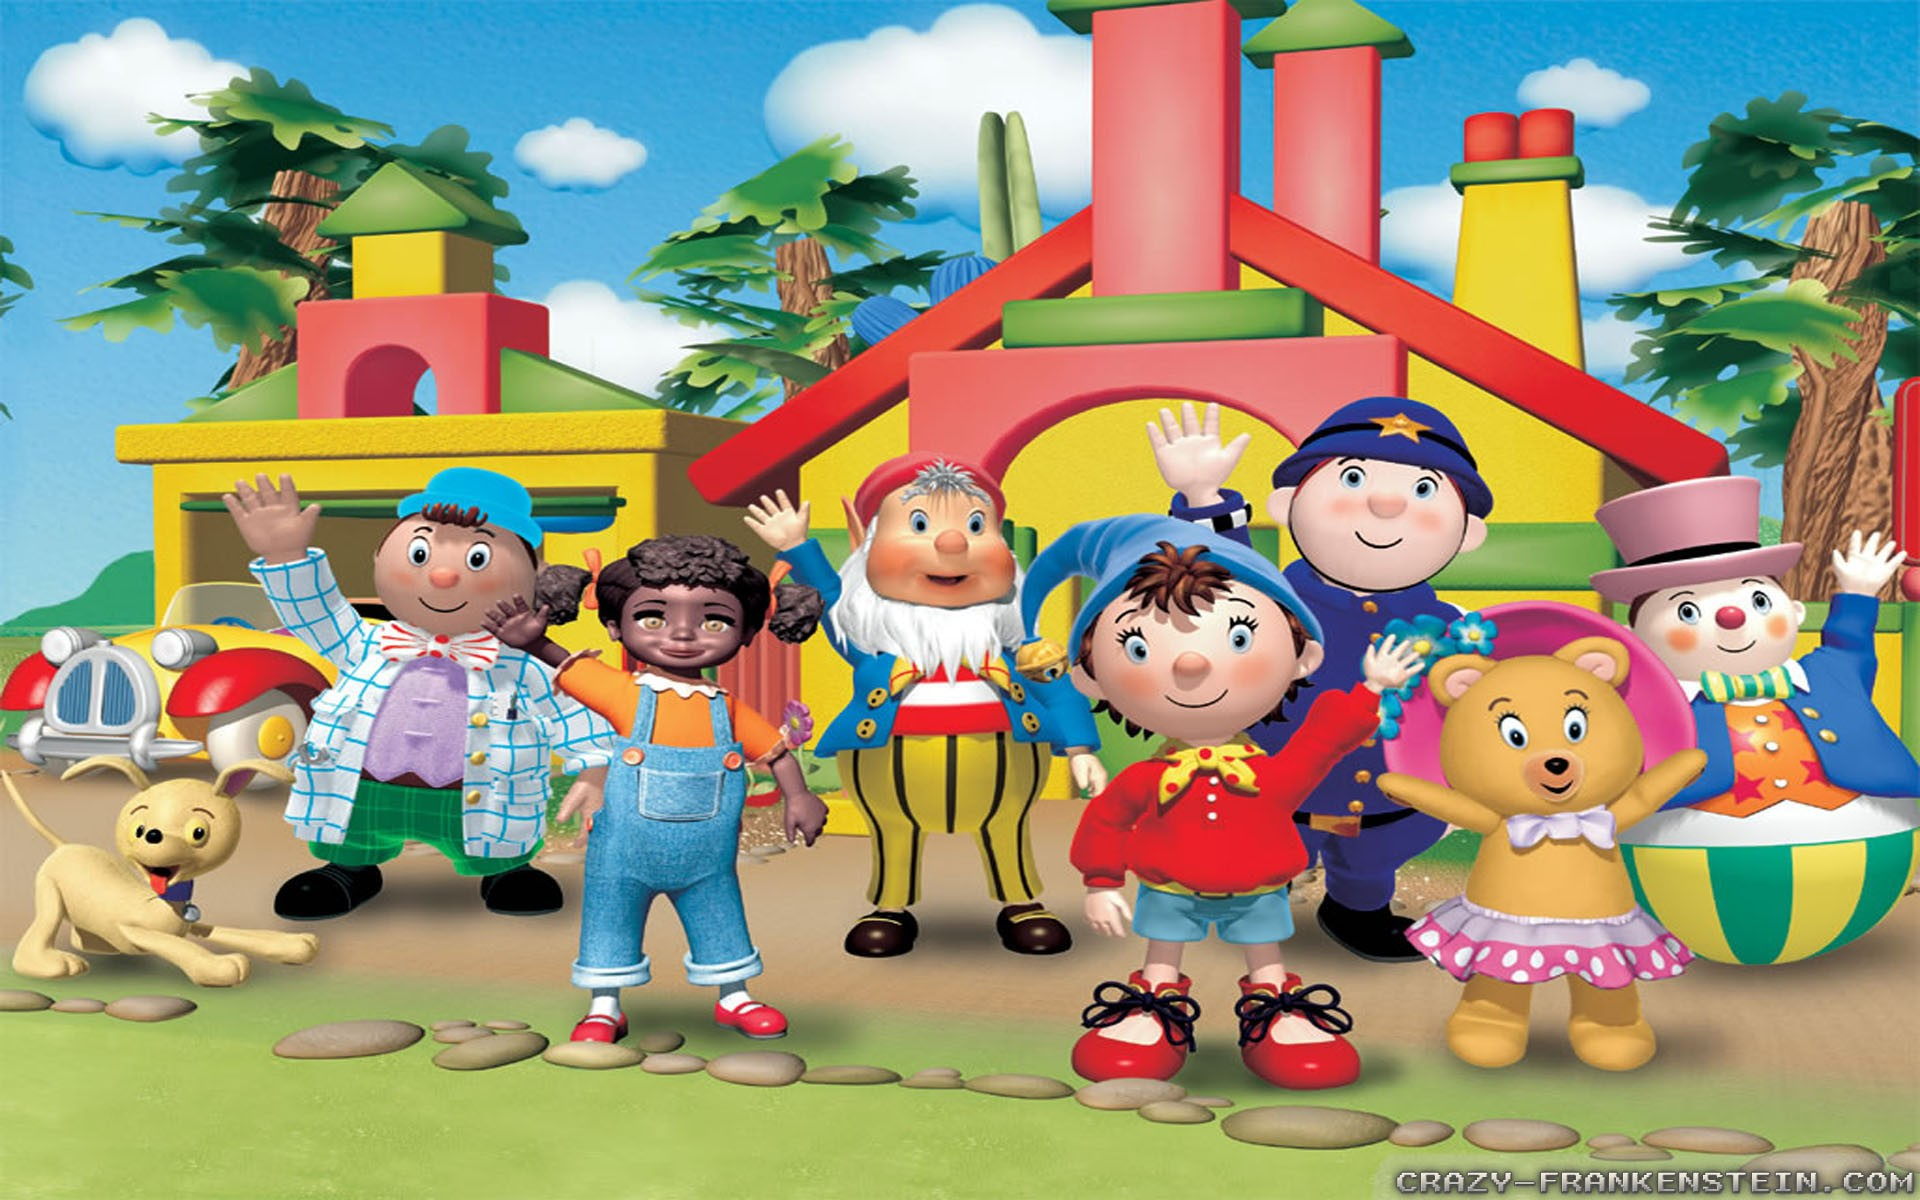 You are currently viewing Noddy in the Big City: A Review of Noddy in Toyland